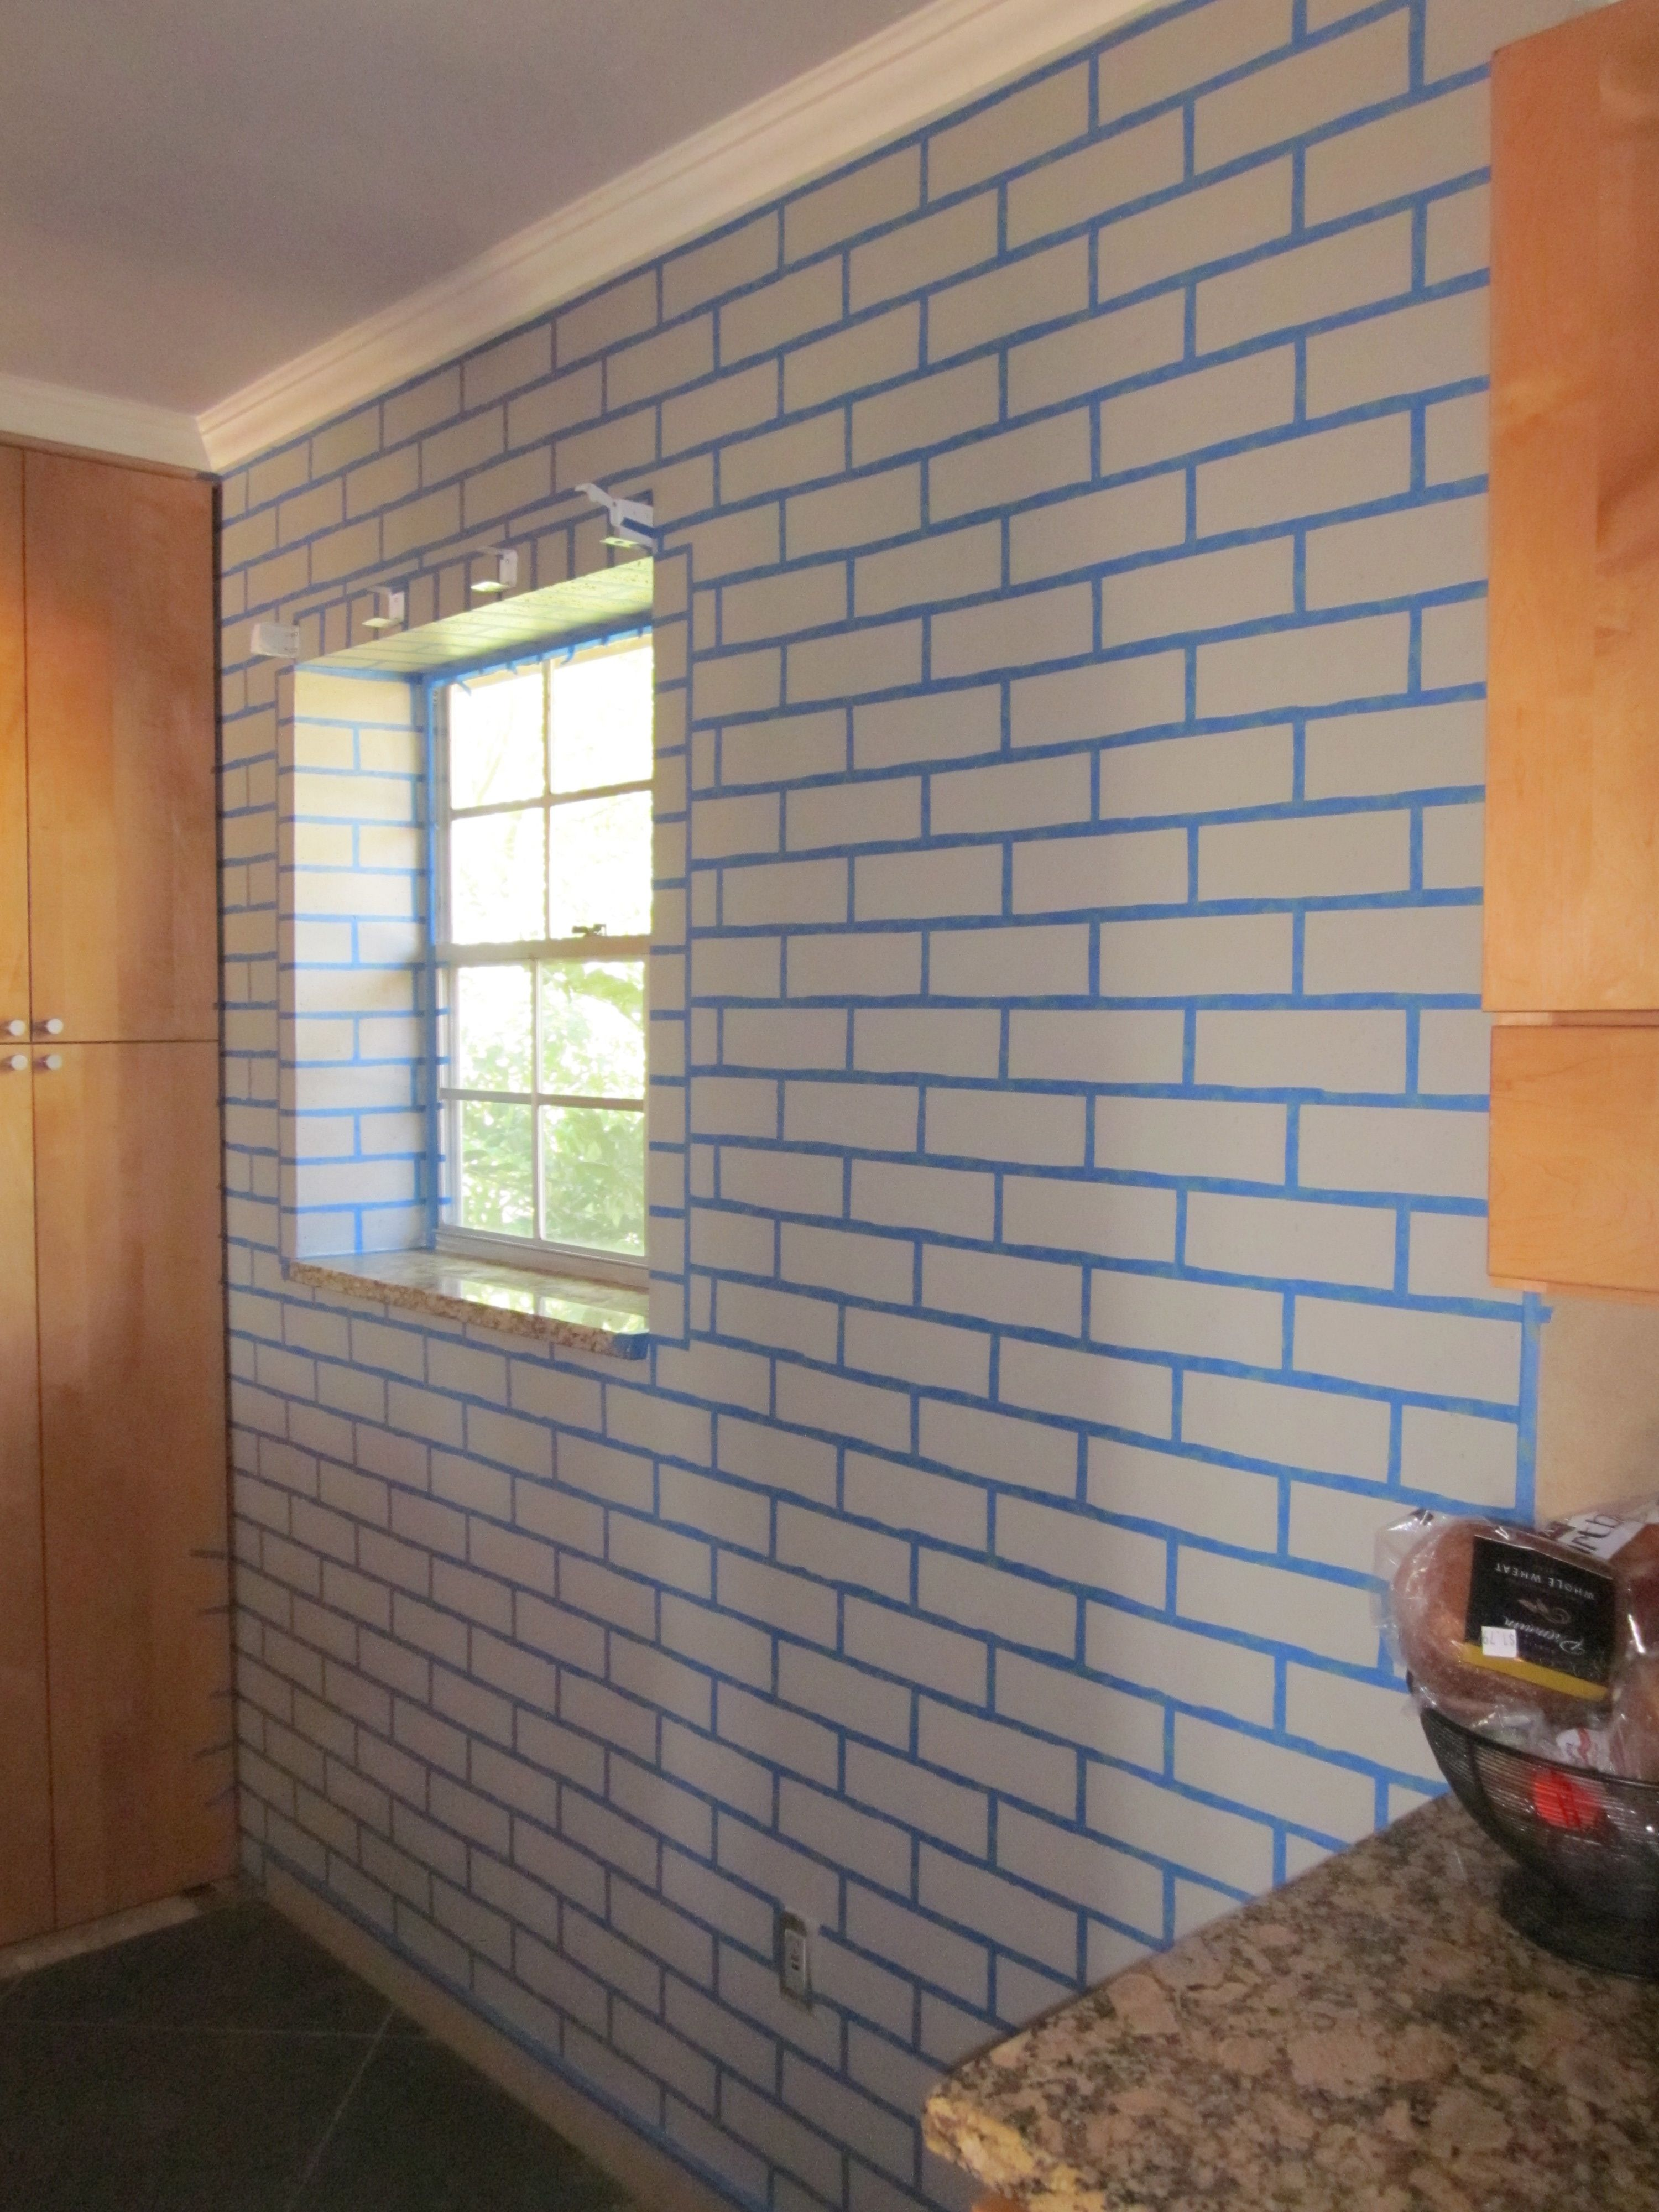 Realistic Faux Brick Wall With Paint | Pinterest | Faux ...